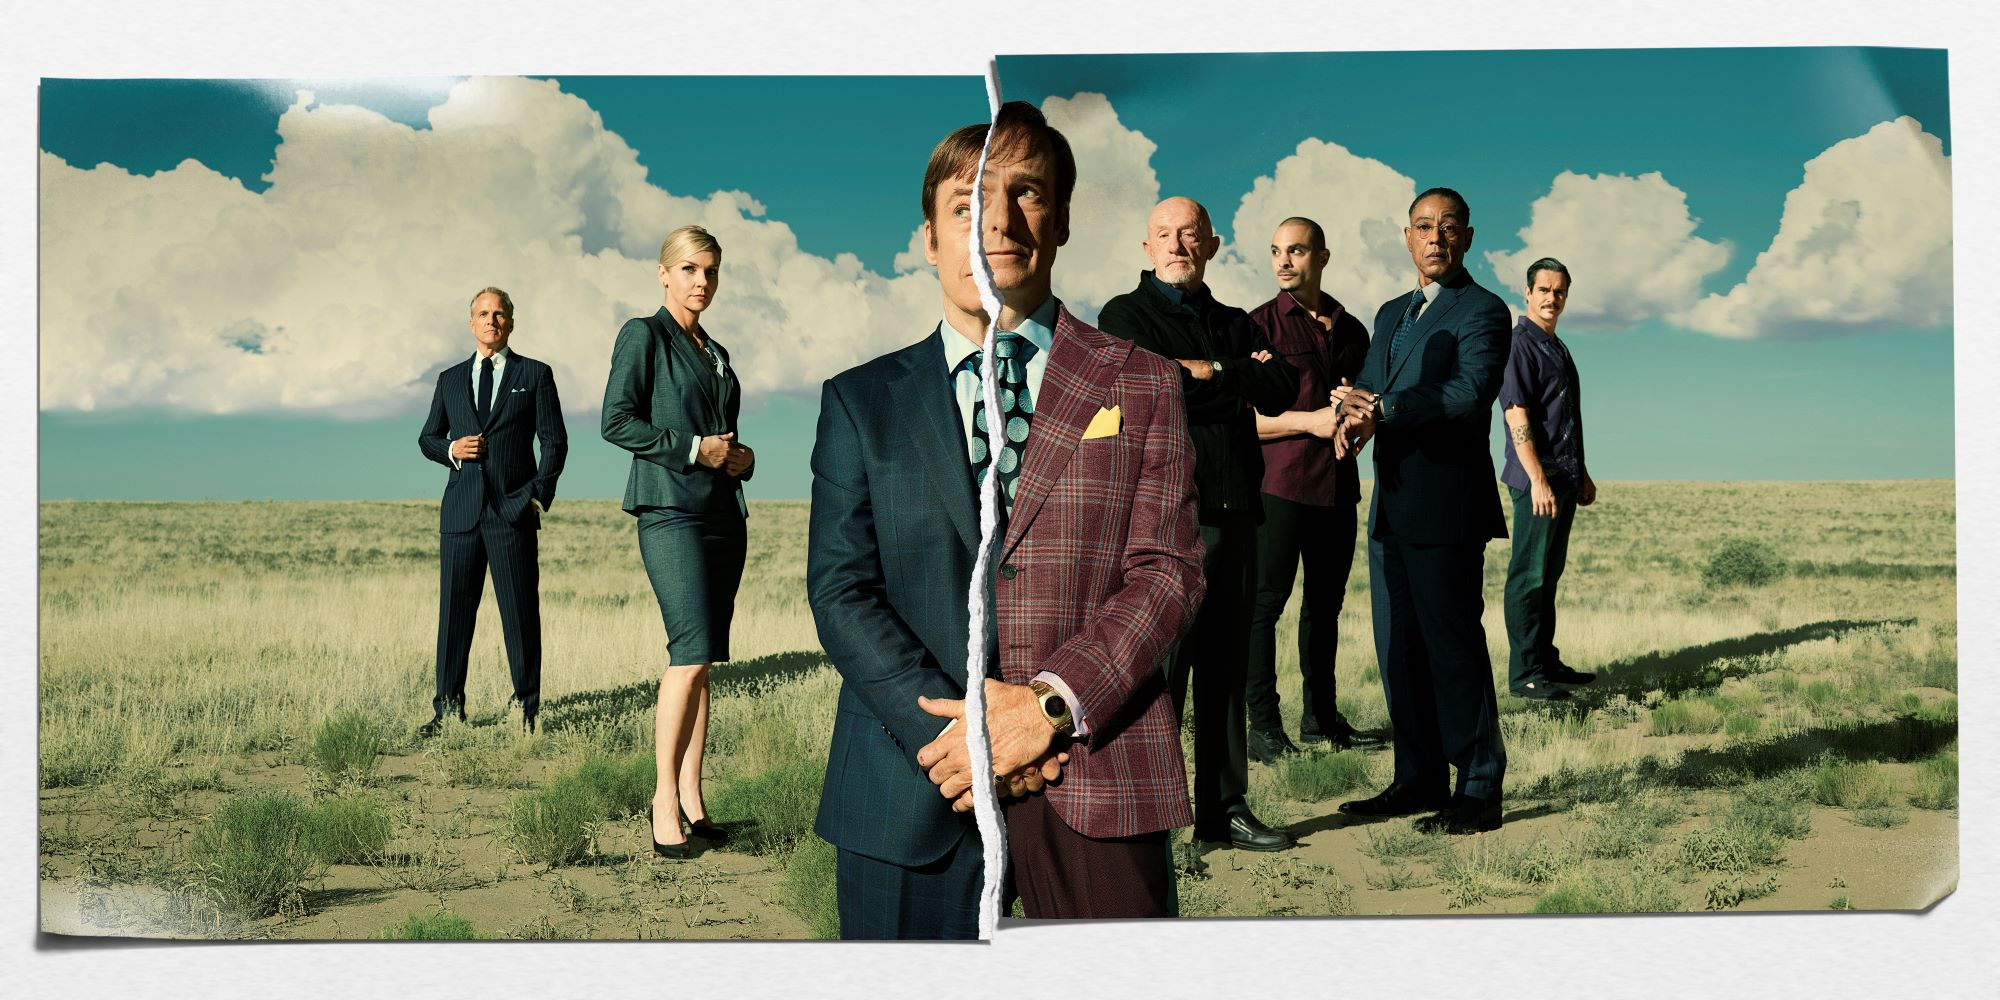 Better Call Saul cast